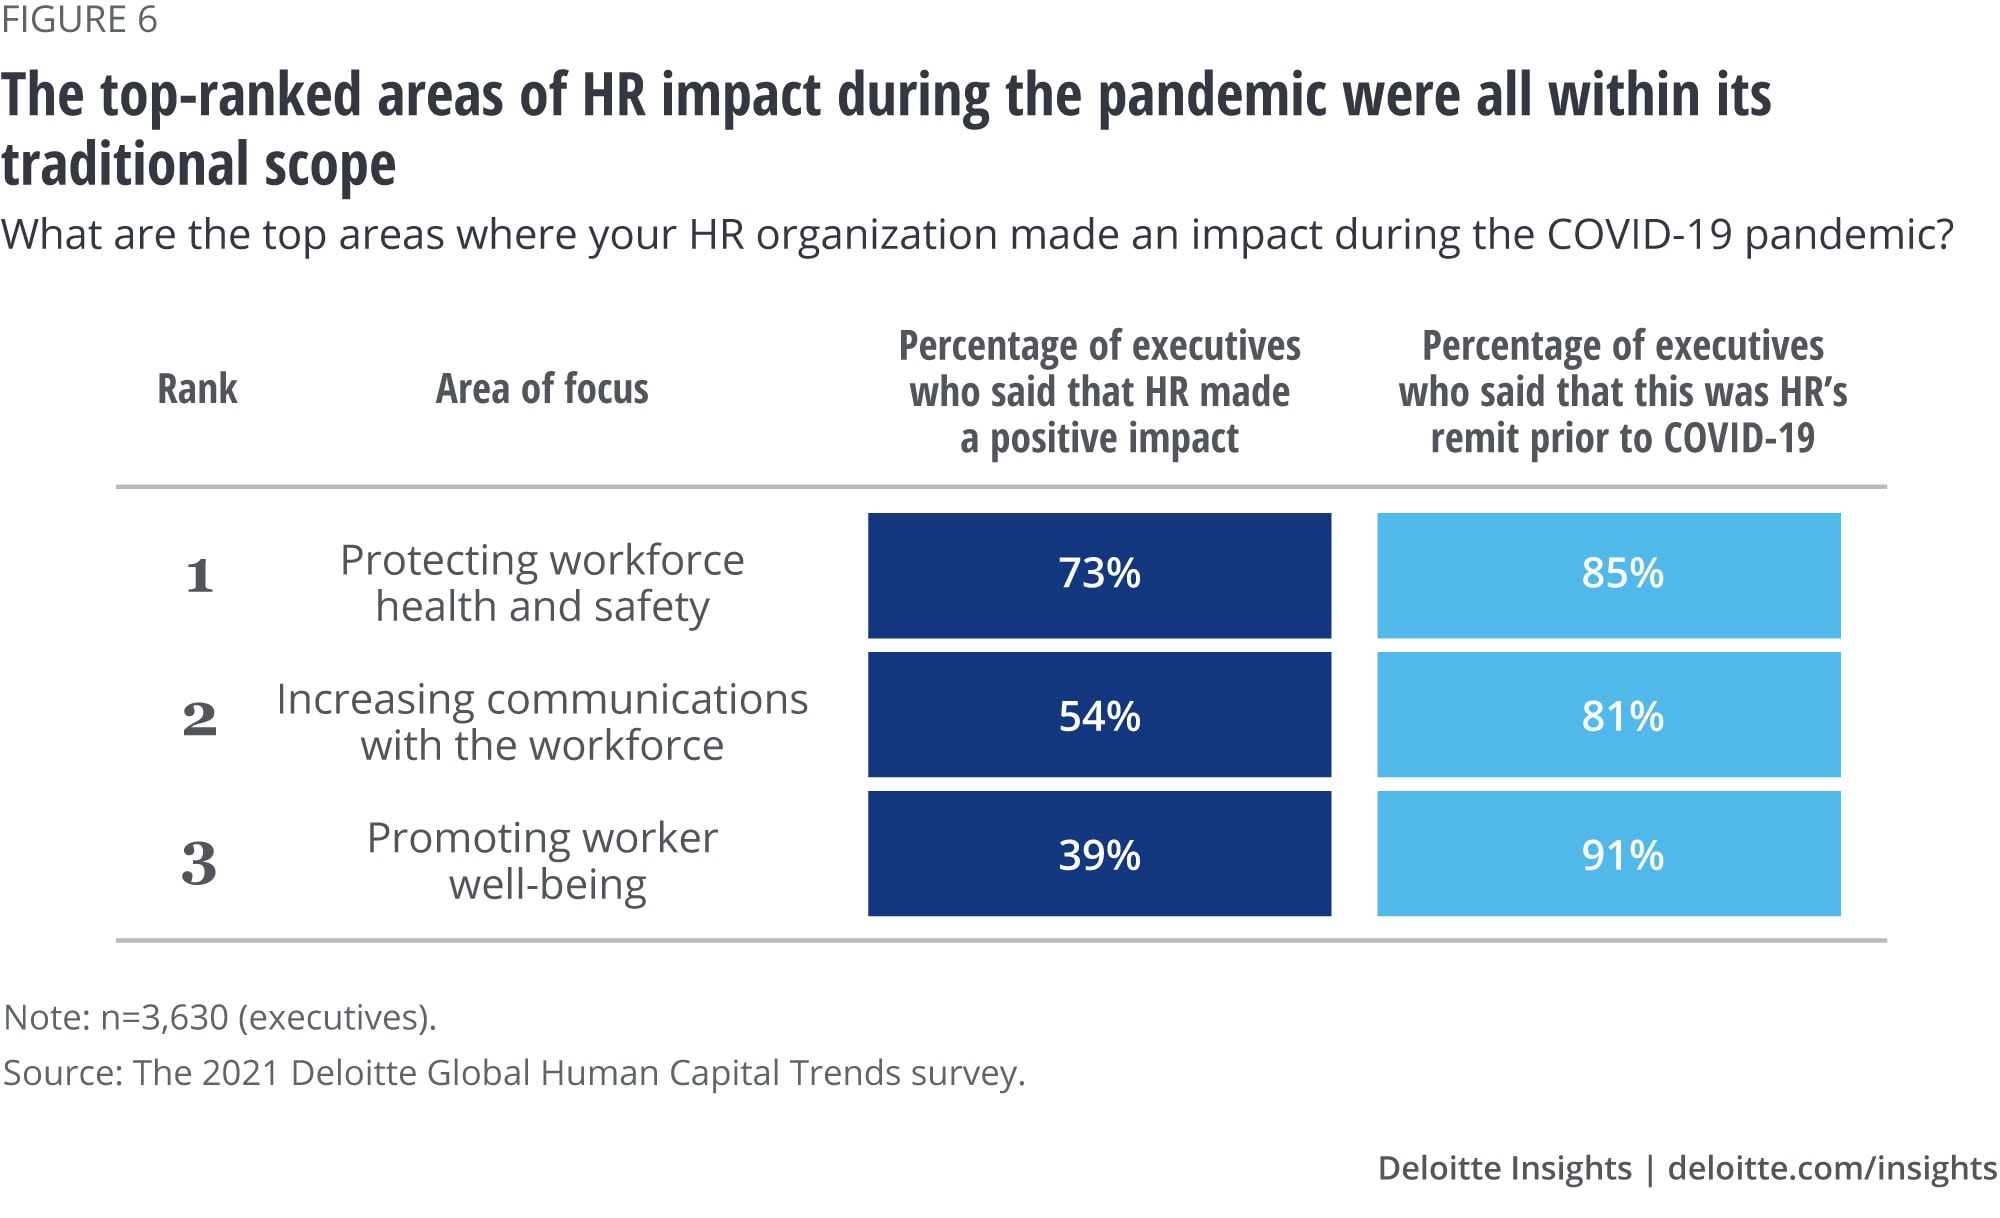 The top-ranked areas of HR impact during the pandemic were all within its traditional scope